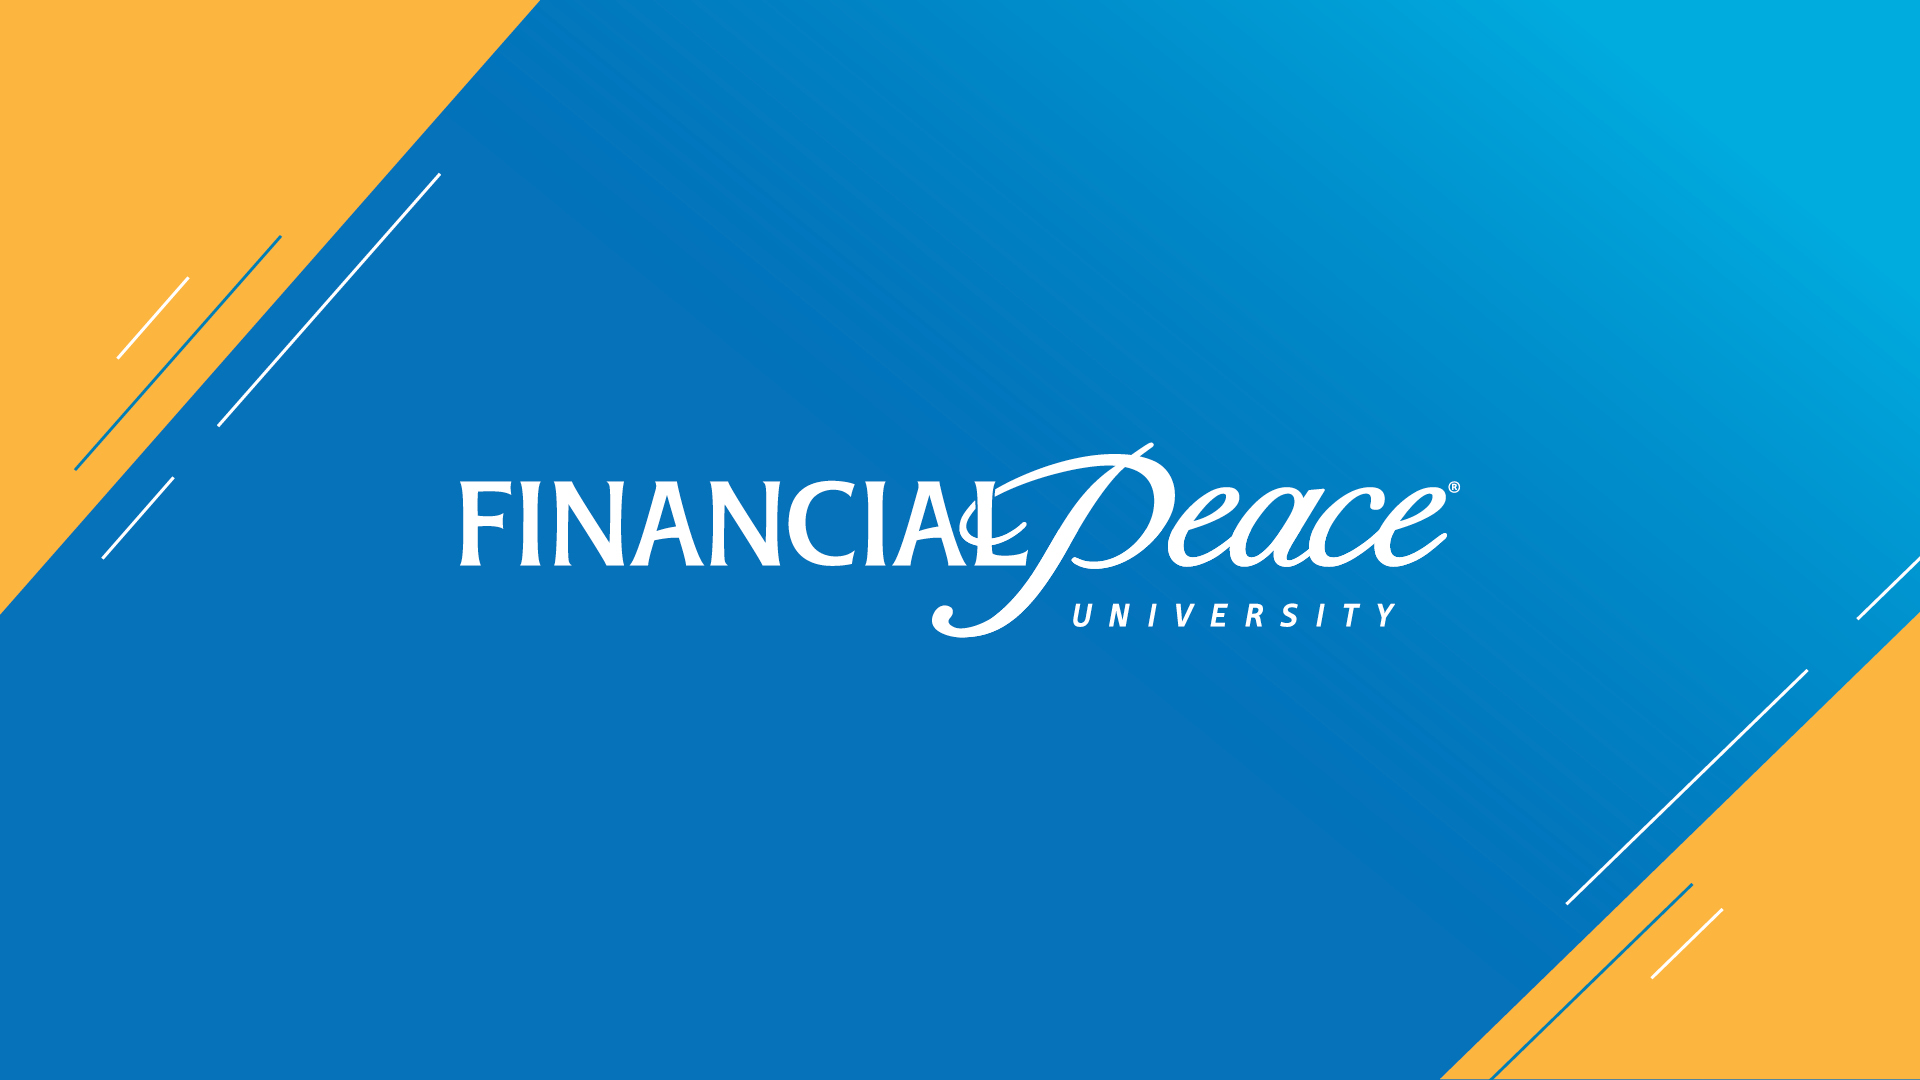 Financial Peace University - Take control of your money with Financial Peace University (FPU)! This nine-lesson course uses biblical wisdom and common sense to help you tackle budgeting, pay off debt, and make your money work for you.